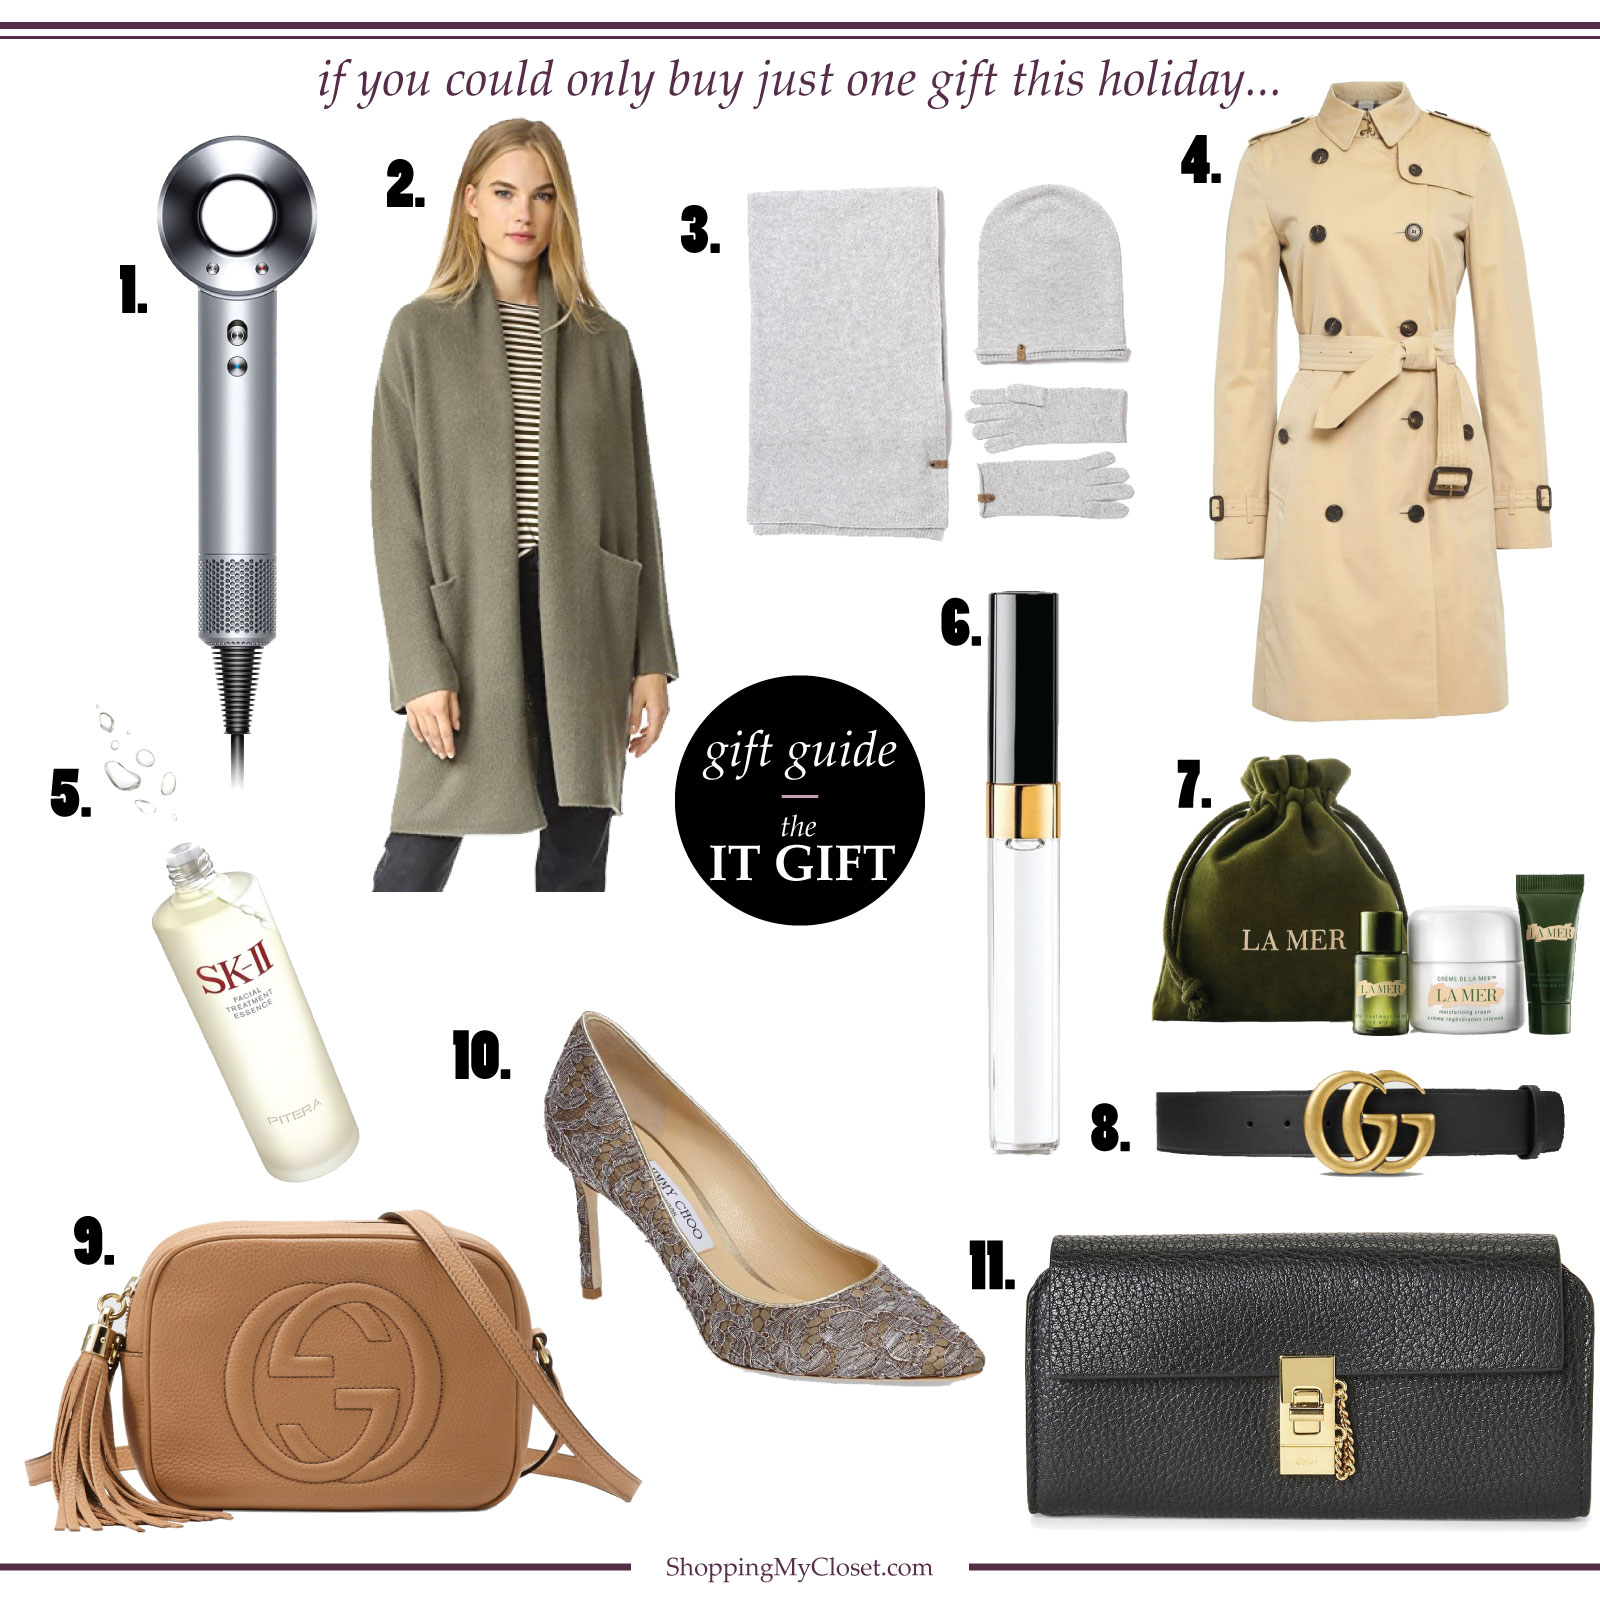 Gift guide: the big gift this holiday season | www.shoppingmycloset.com